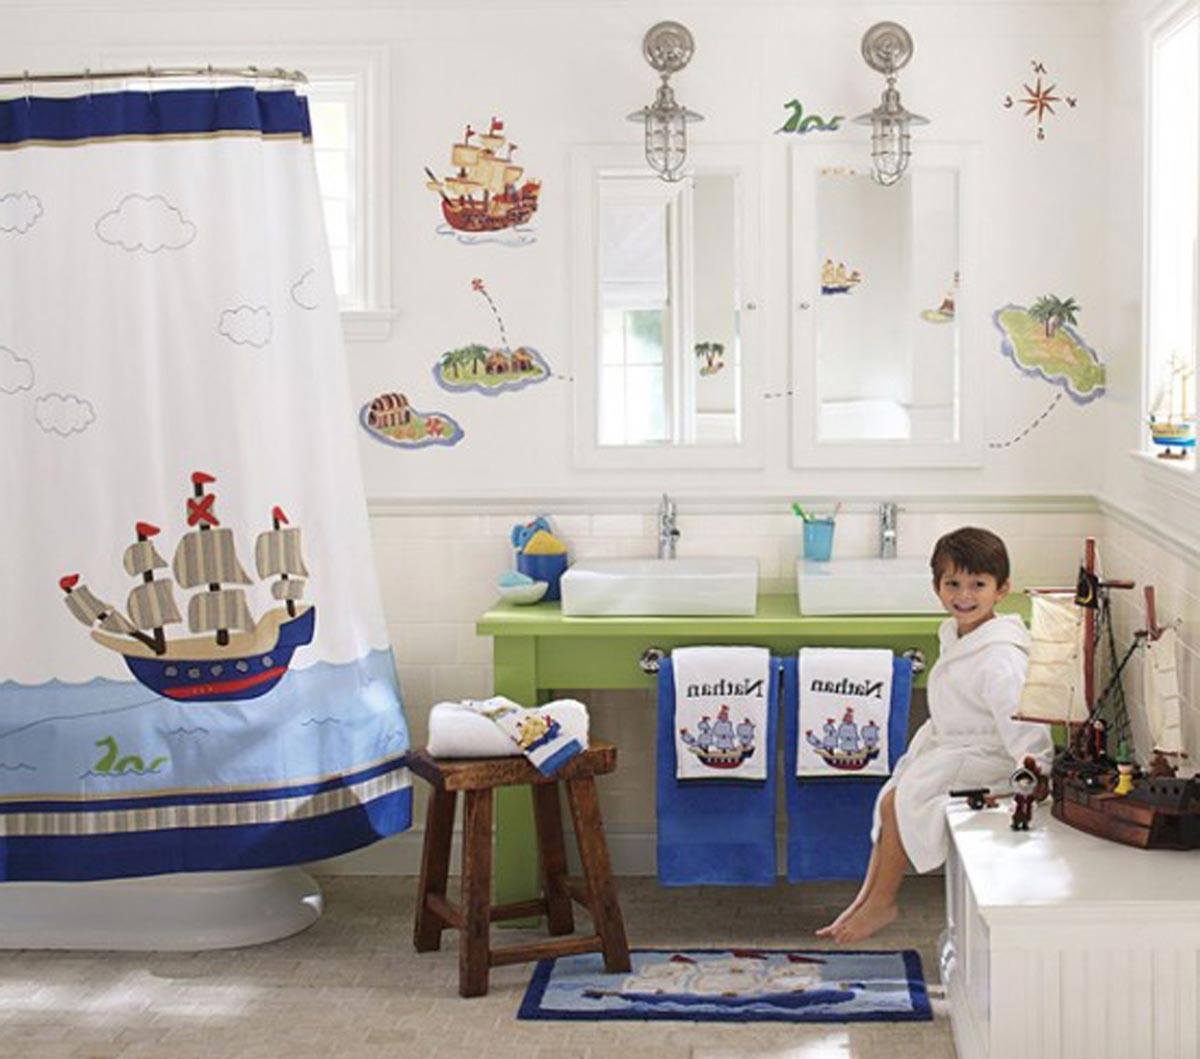 Beautiful and elegant sea themed bathroom homesfeed for Kids bathroom ideas for boys